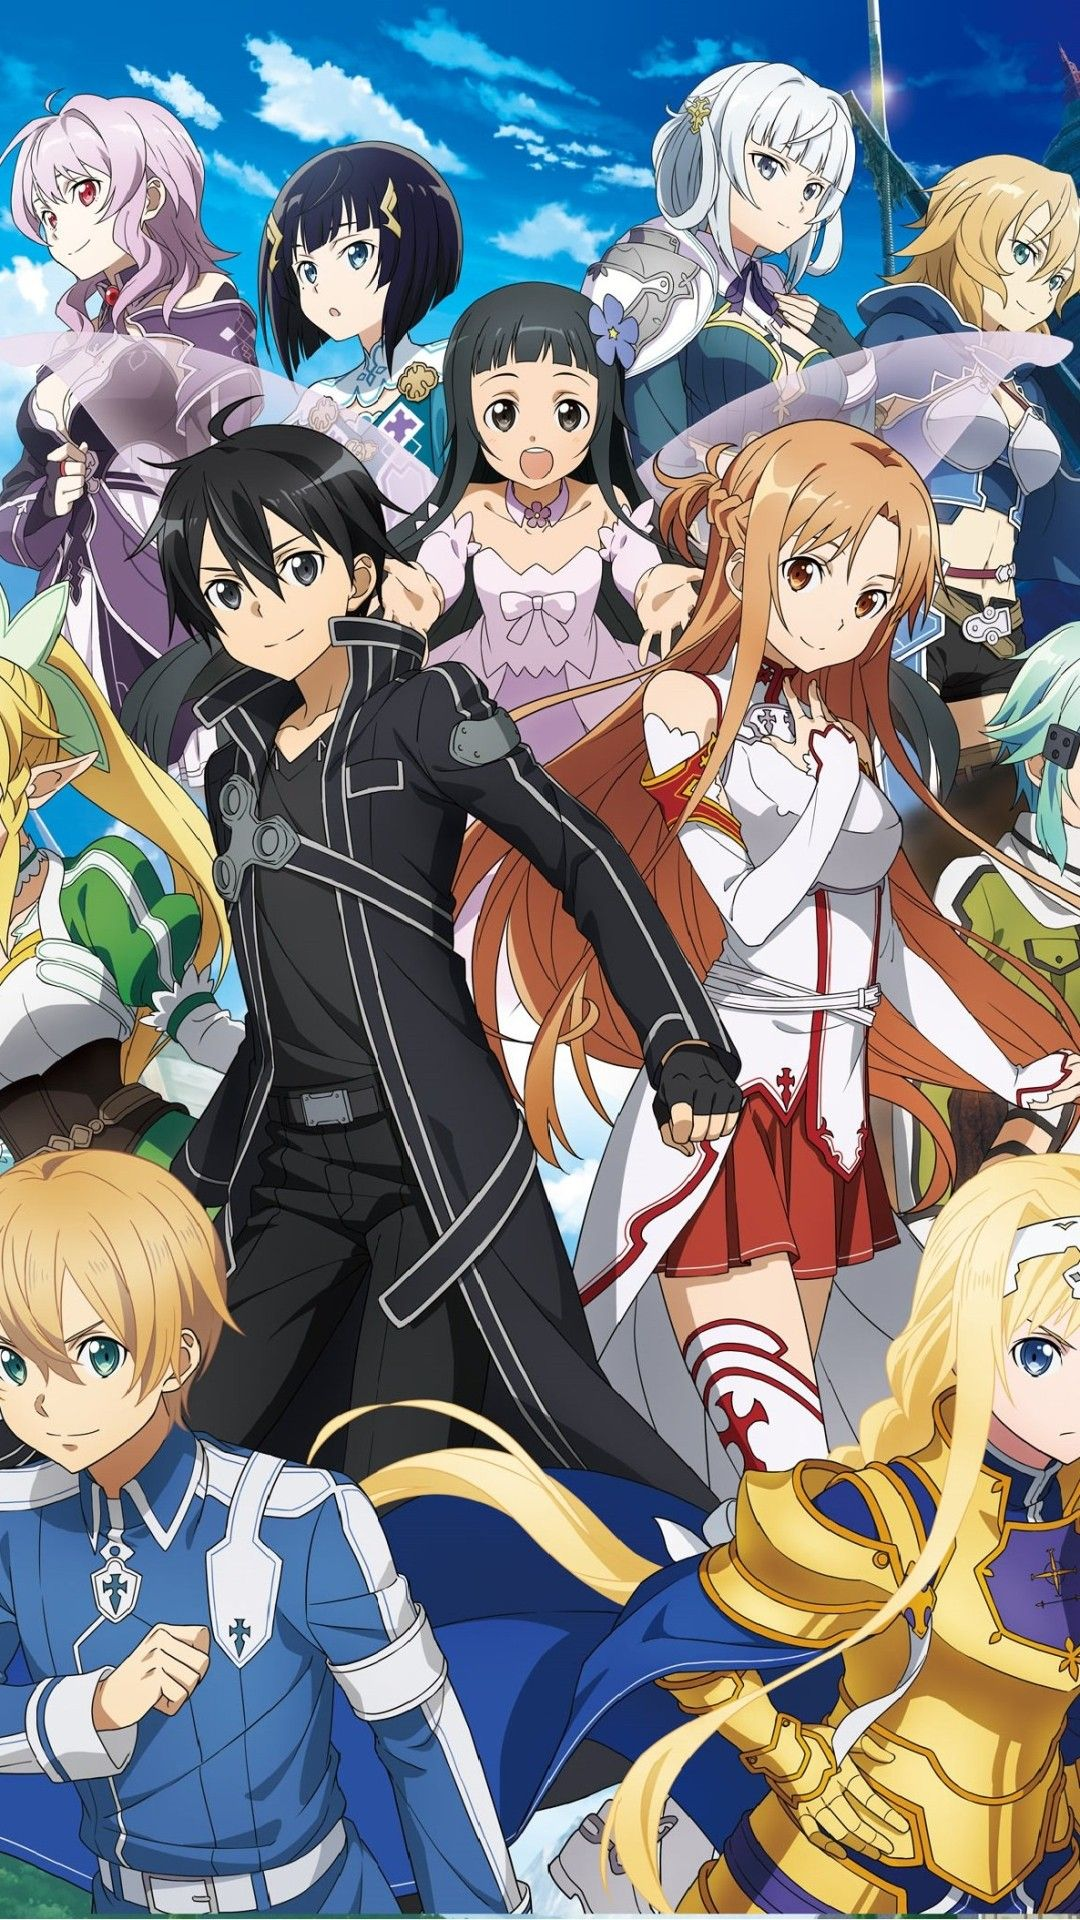 Wallpaper Phone Sword Art Online Full HD Zueira anime